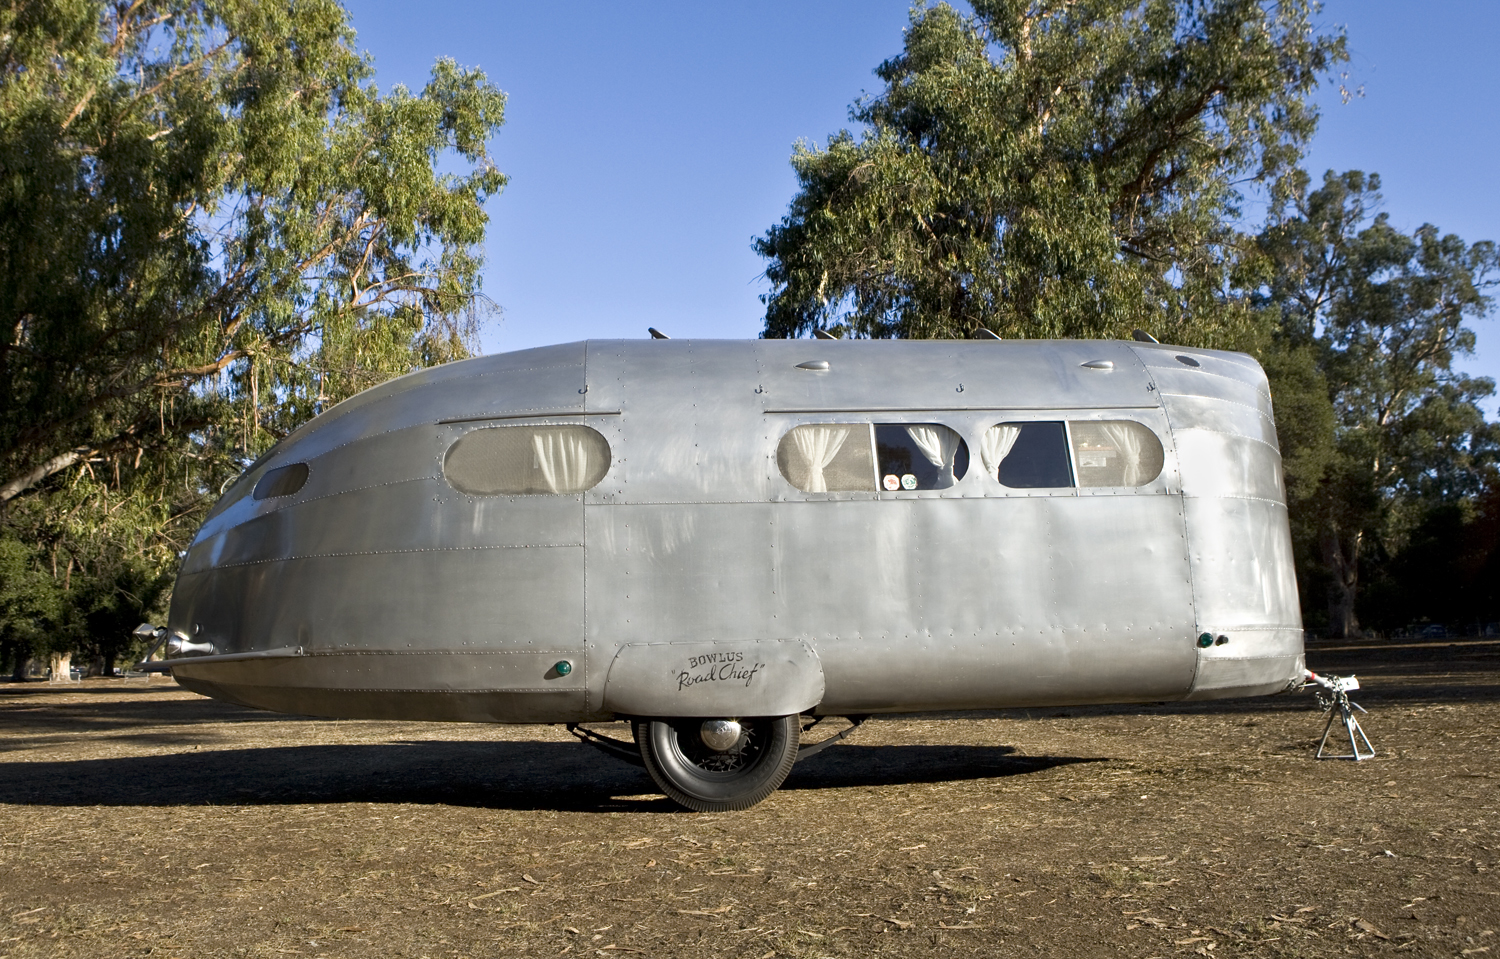 Posted in retro vintage tagged classic cars teardrop caravan vintage - 1935 Bowlus Trailer